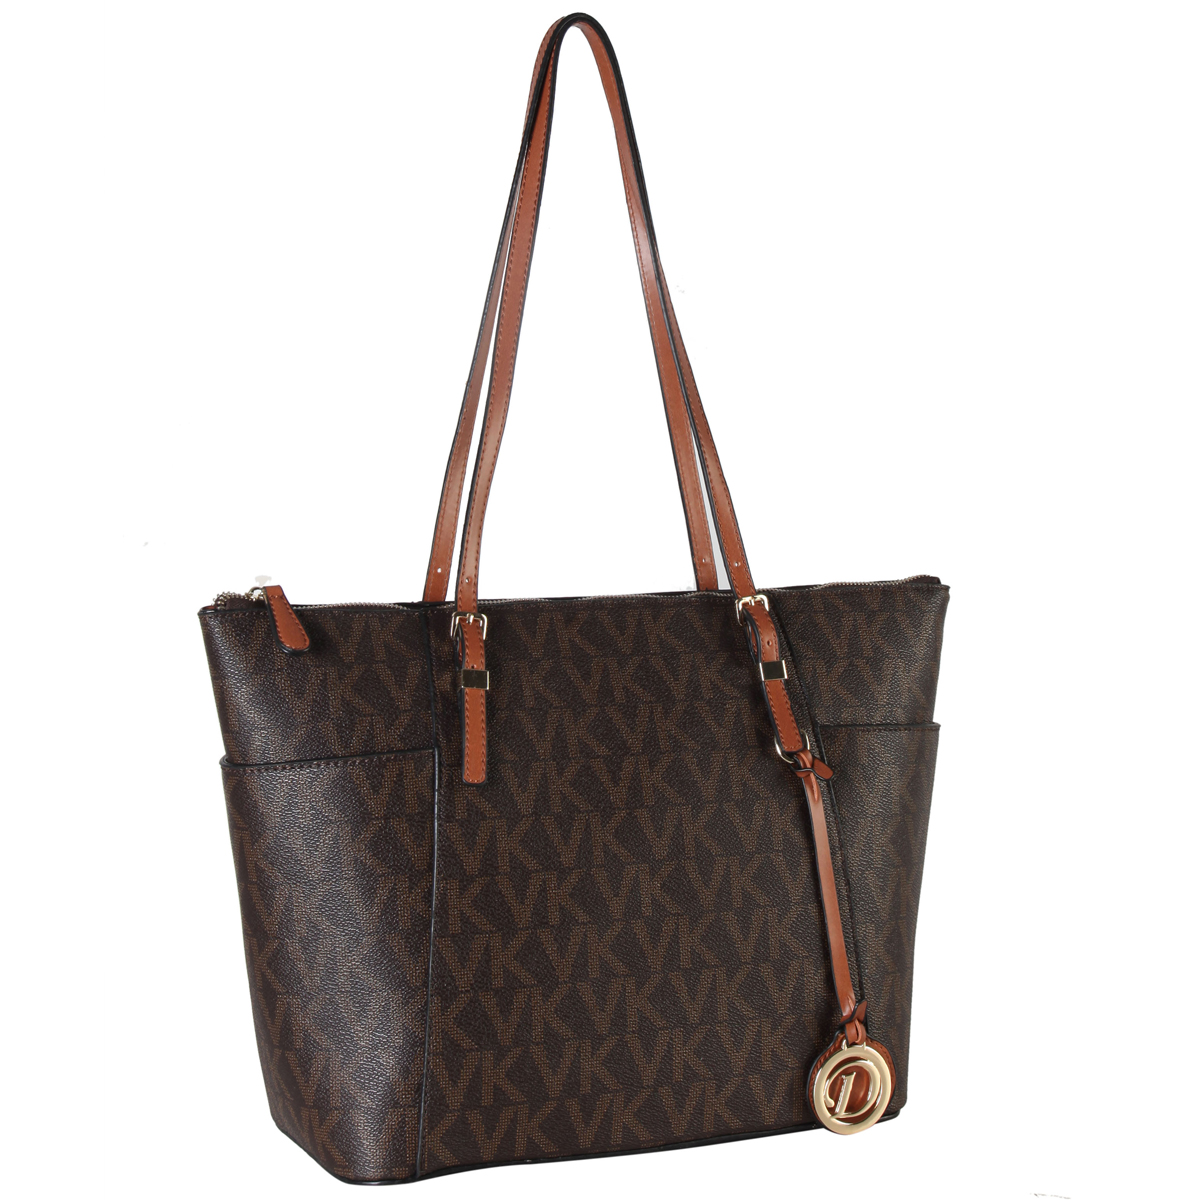 Monogram Faux Leather Belted Tote with Open Side Pockets